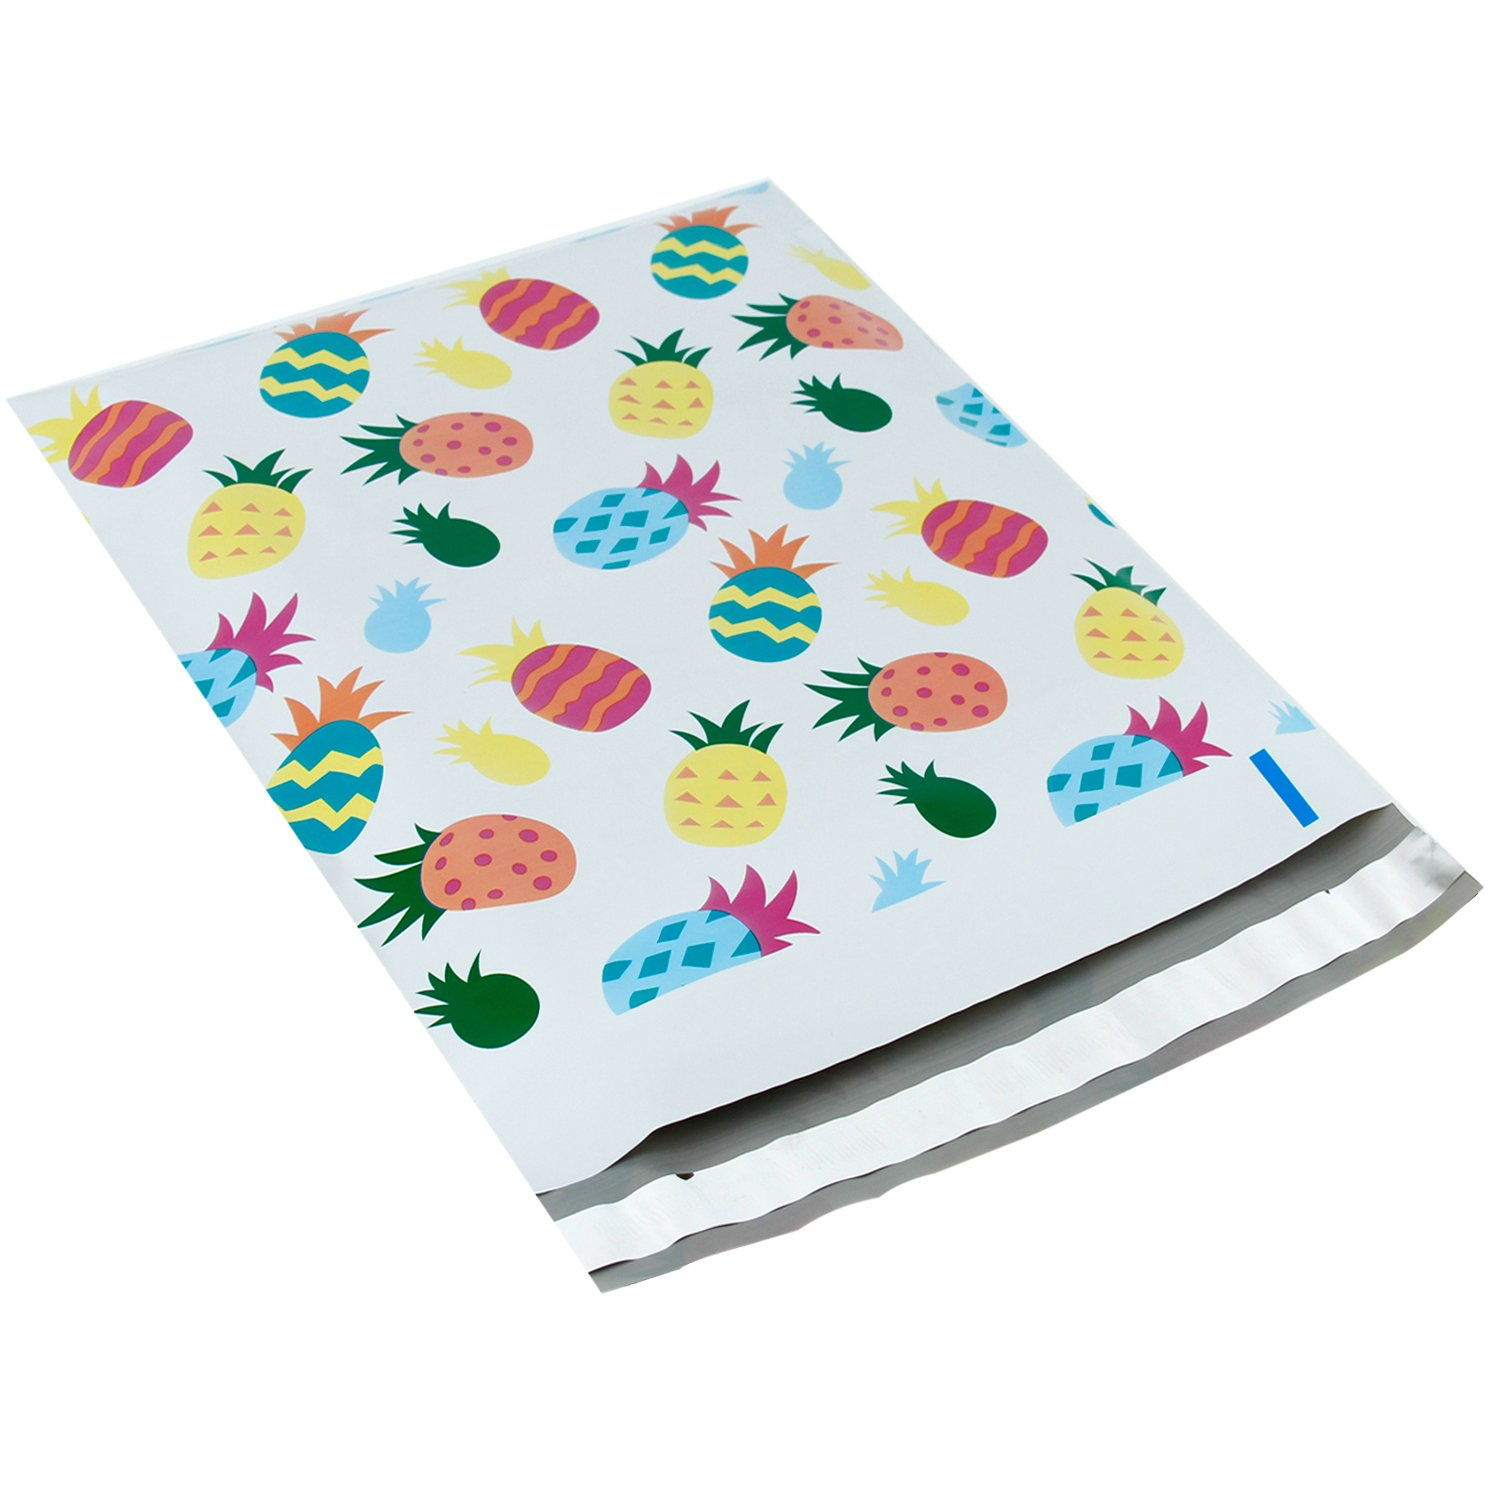 RUSPEPA Poly Mailer Shipping Bag - Pineapple Design Printed Envelopes with Self Seal Adhesive Strip - 10x13 inch - 100Pcs - Pineapple